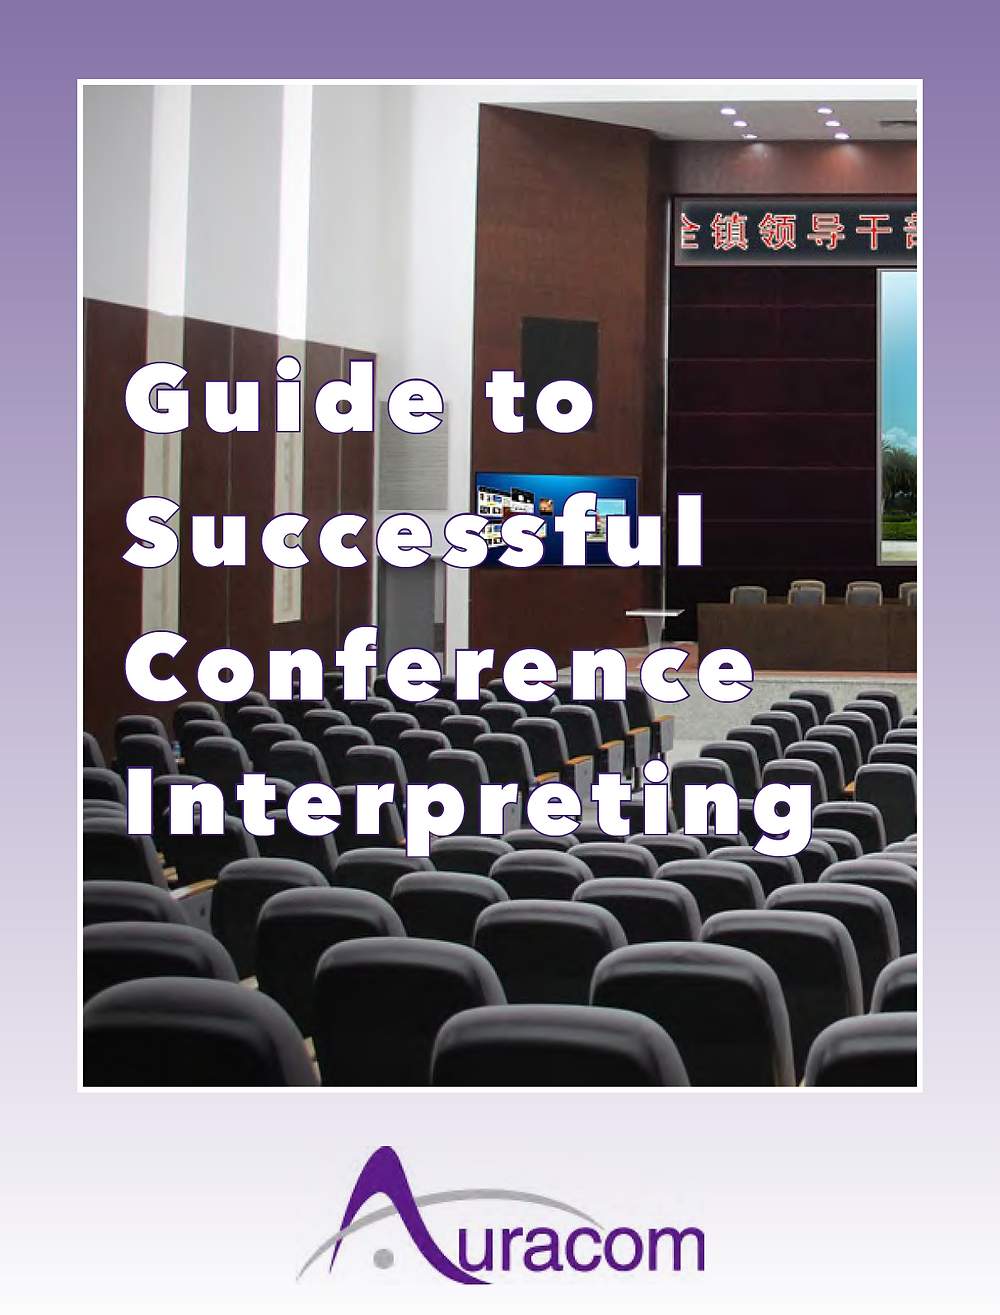 Guide to Successful Conference Interpreting